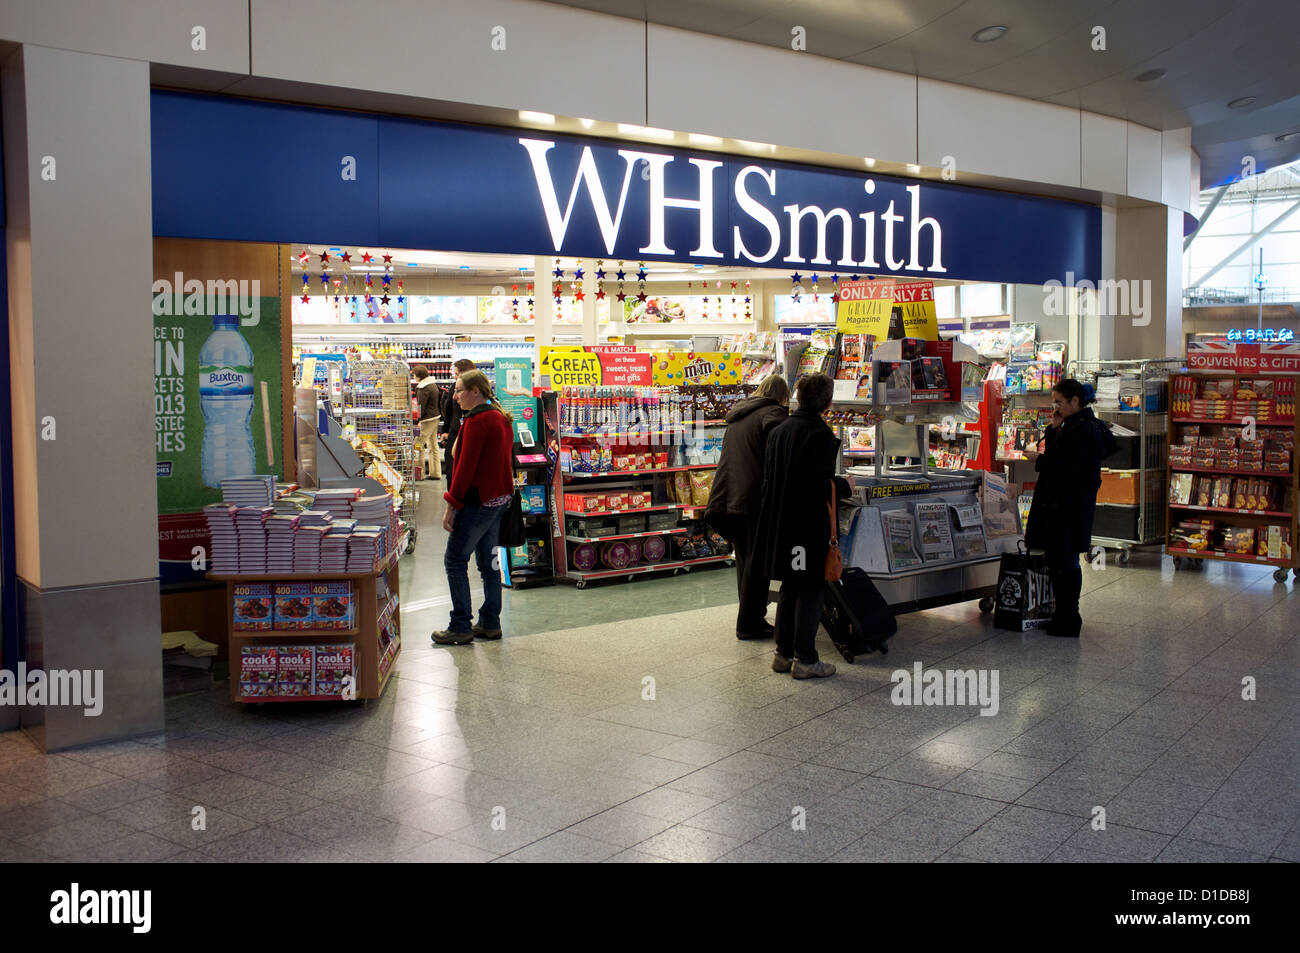 WH Smith, Stansted Airport - Stock Image